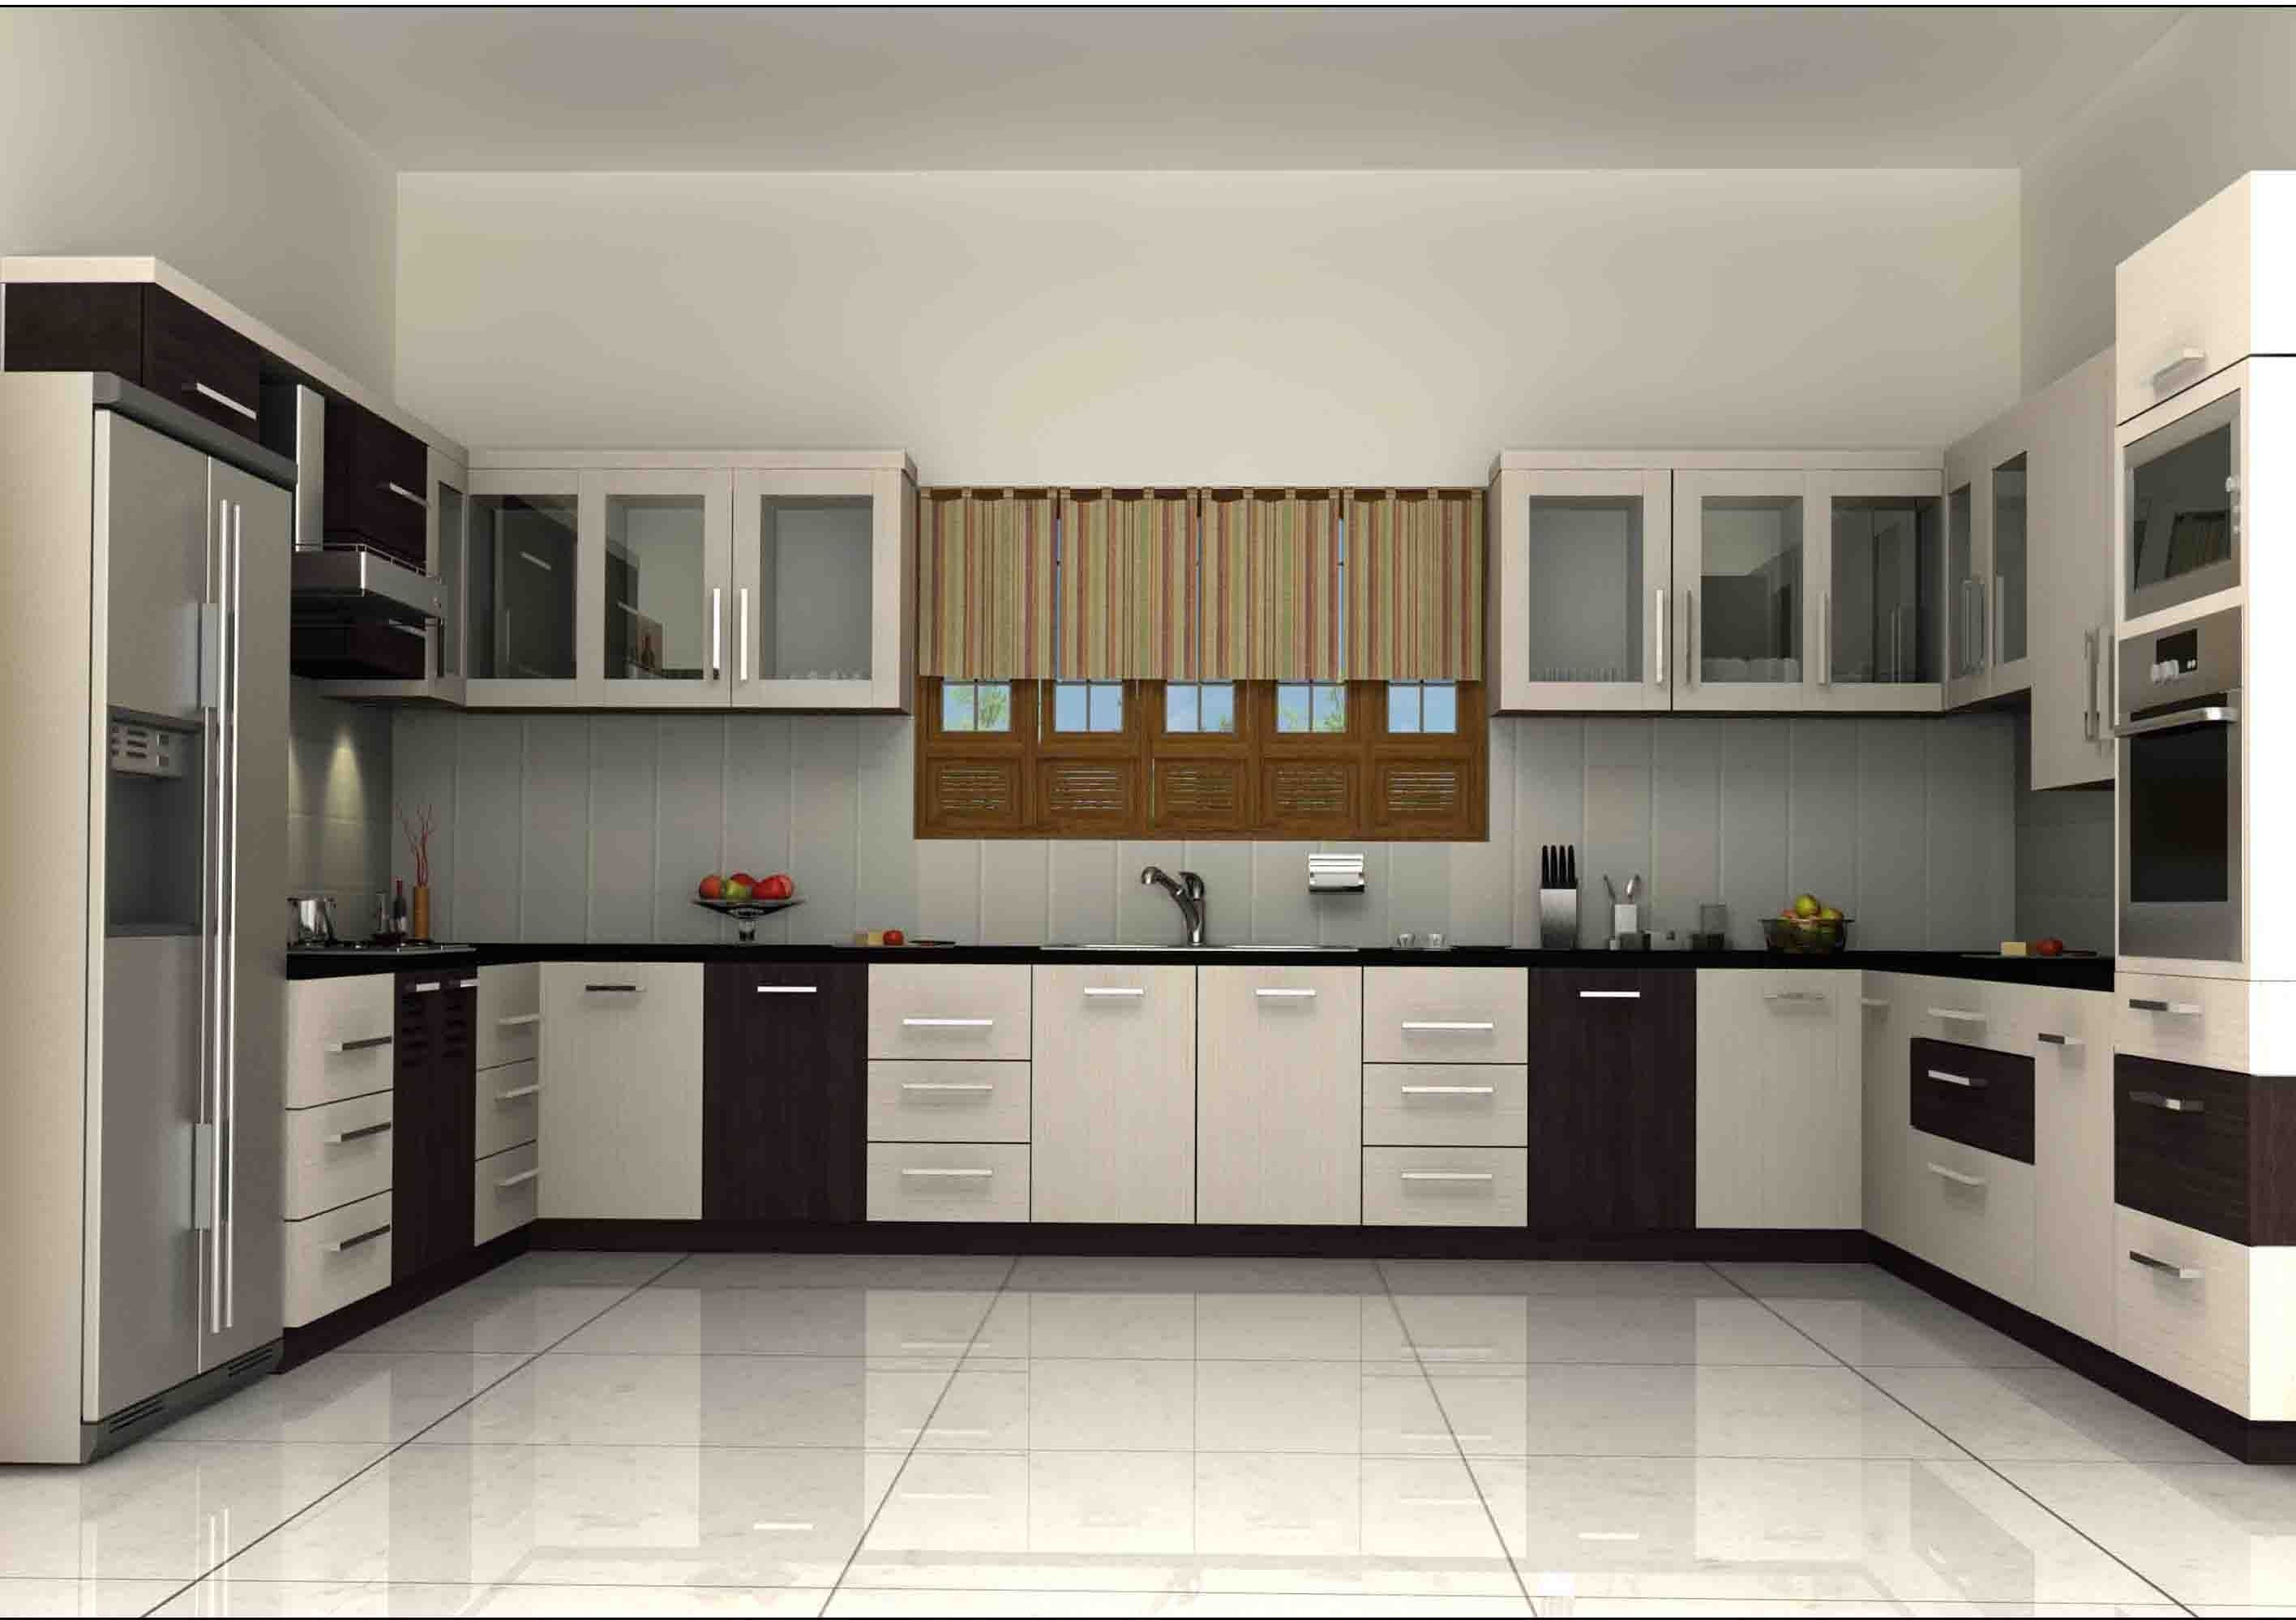 Traditional Indian Kitchen Designs Ingenious Design Ideas Simple Kitchen Designs For Indian Homes